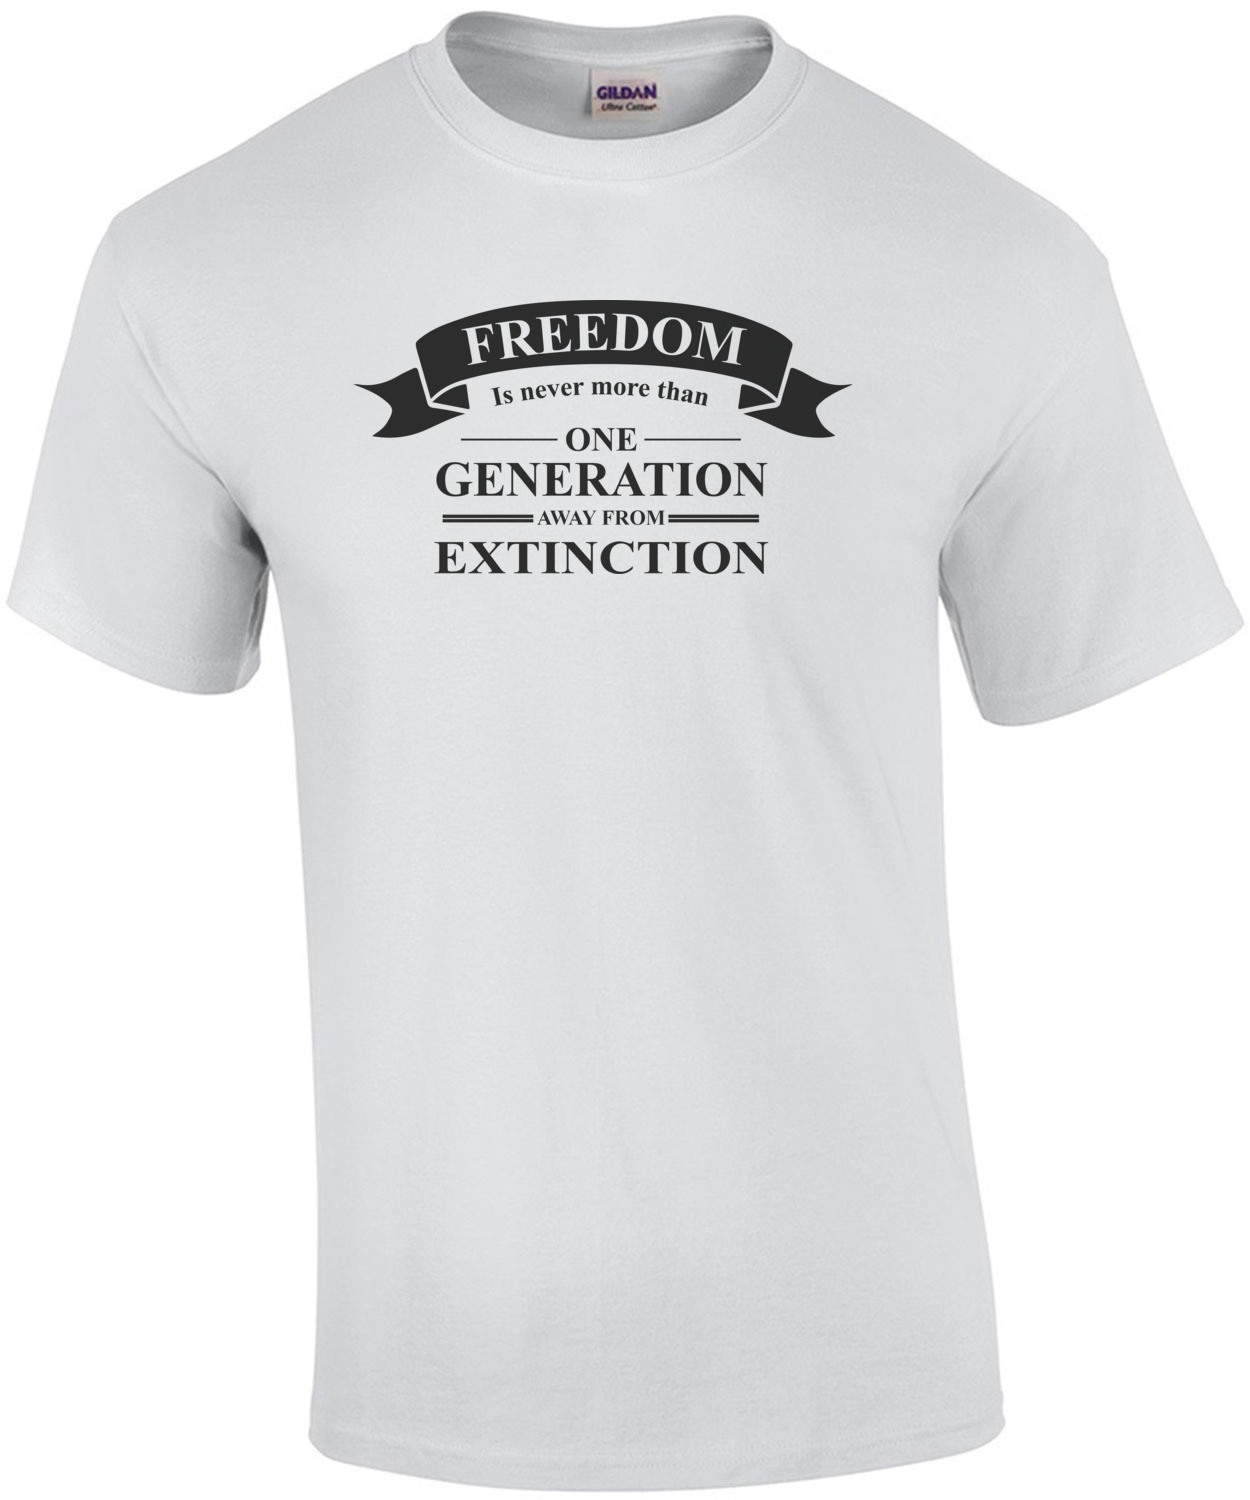 Freedom is never more than one generation away from extinction - Ronald Reagan Quote T-Shirt